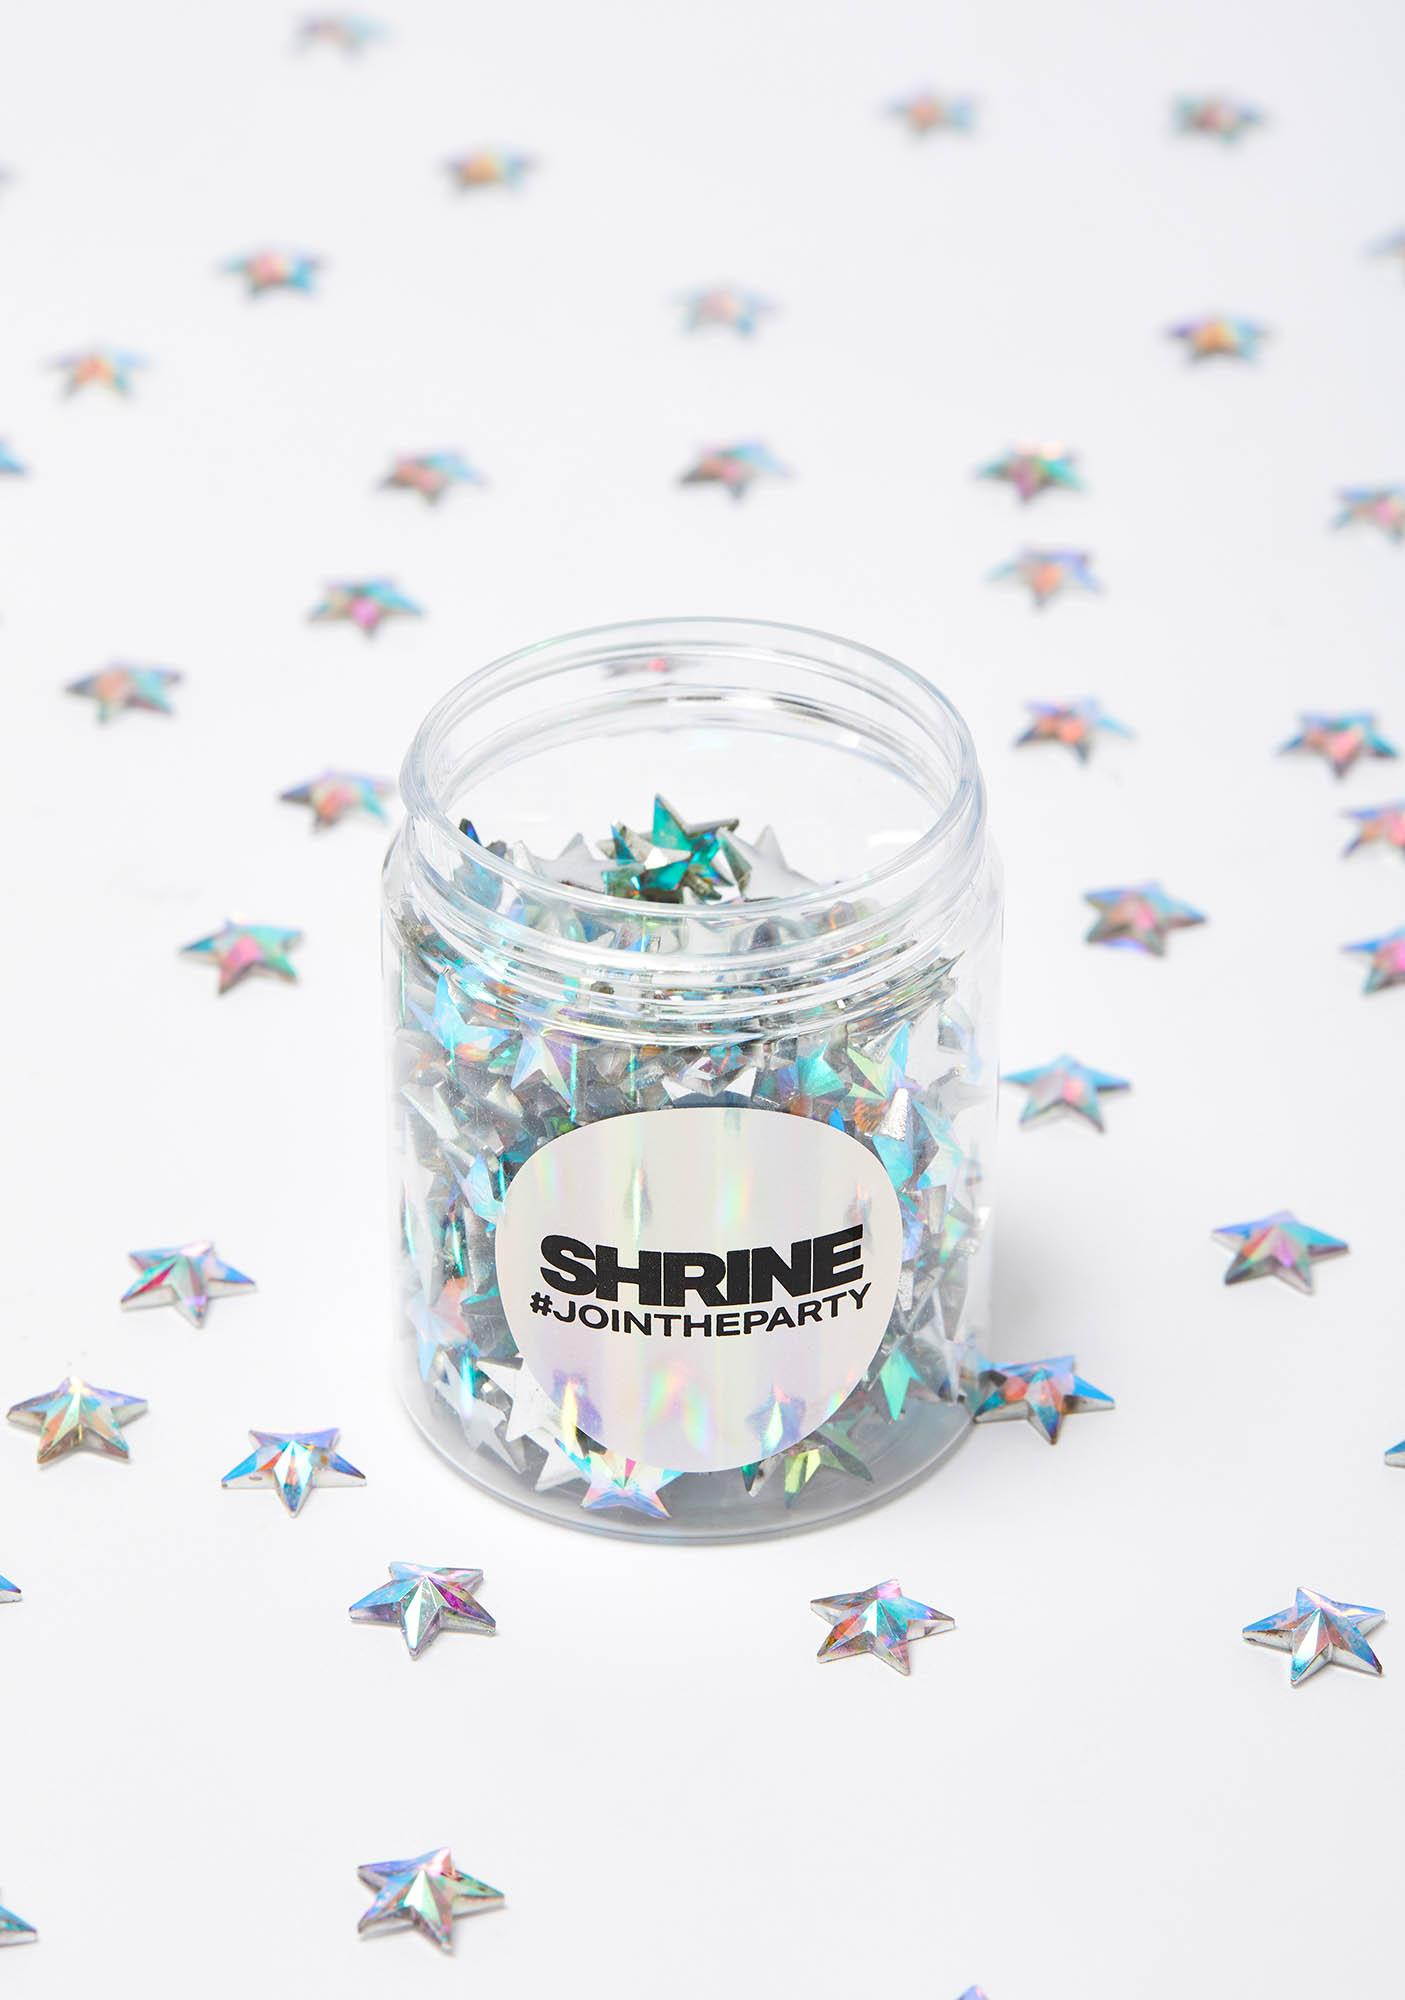 SHRINE Loose Star Jewels